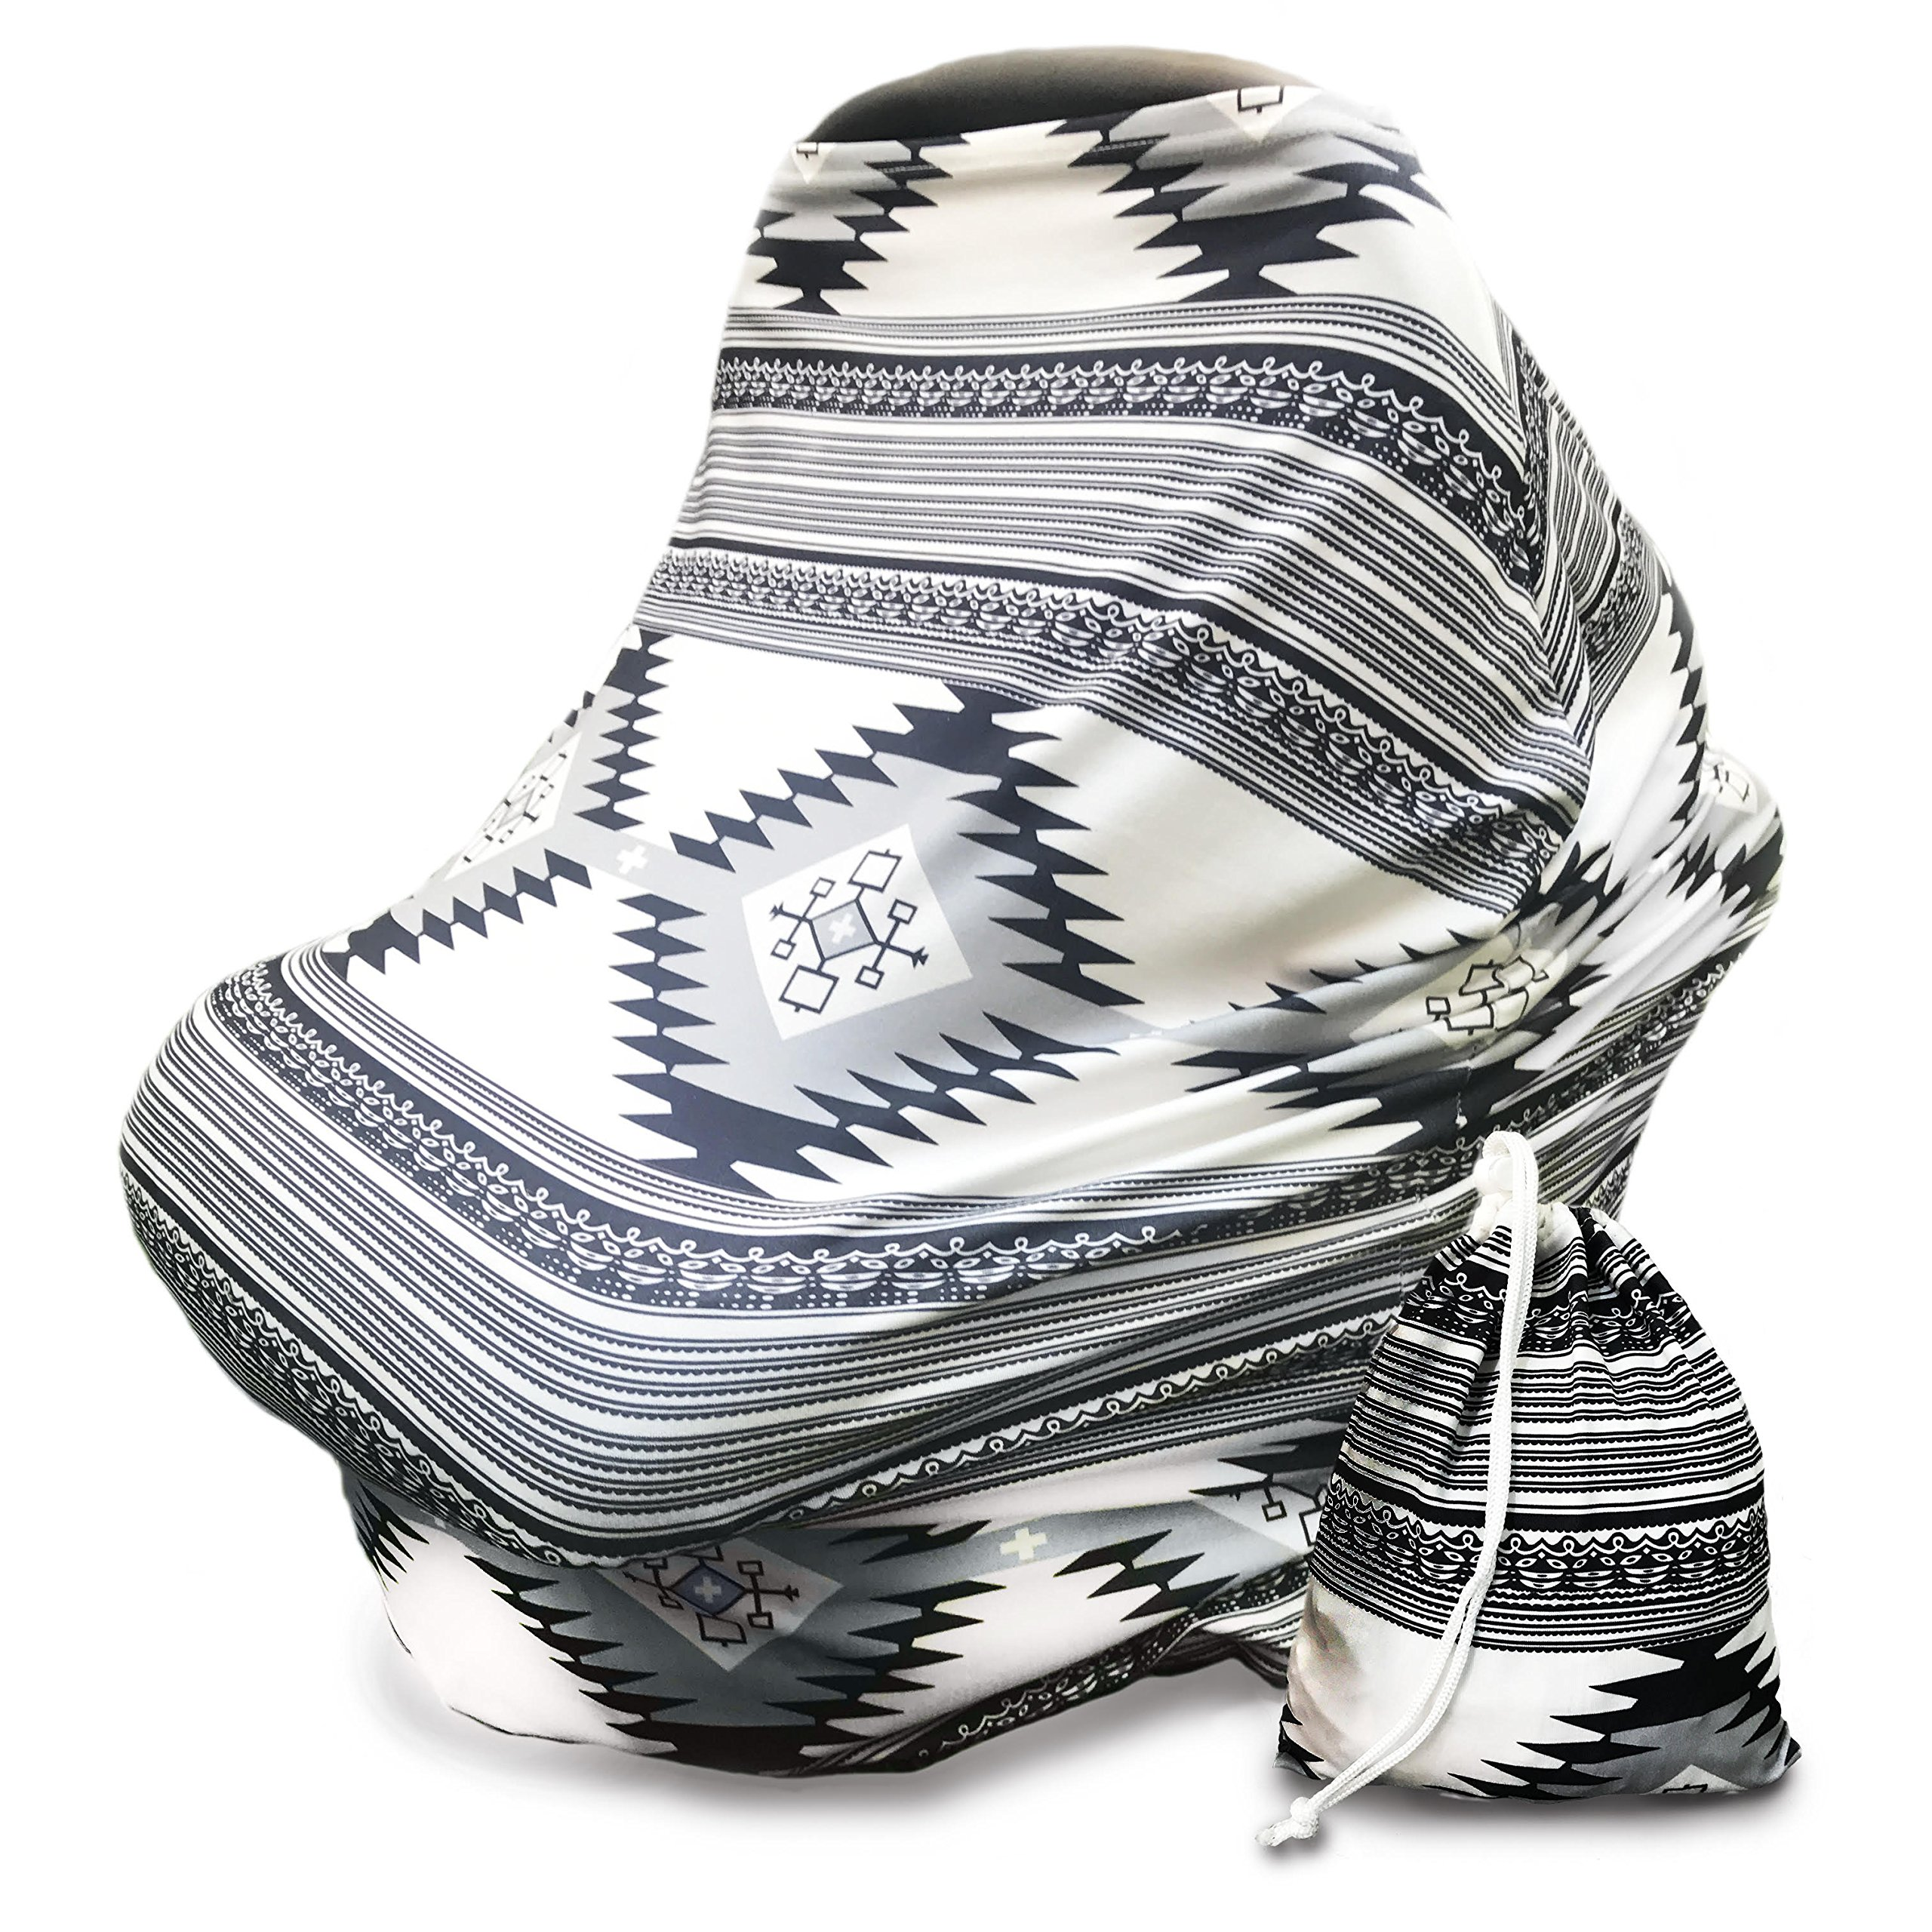 Nursing Breastfeeding Cover Scarf - Aztec Grey - Infant Car Seat Canopy - Shopping Cart - Carseat Covers - Baby gear - Multi Use Blanket Stroller - Perfect Baby Shower Gift for Boys and Girls